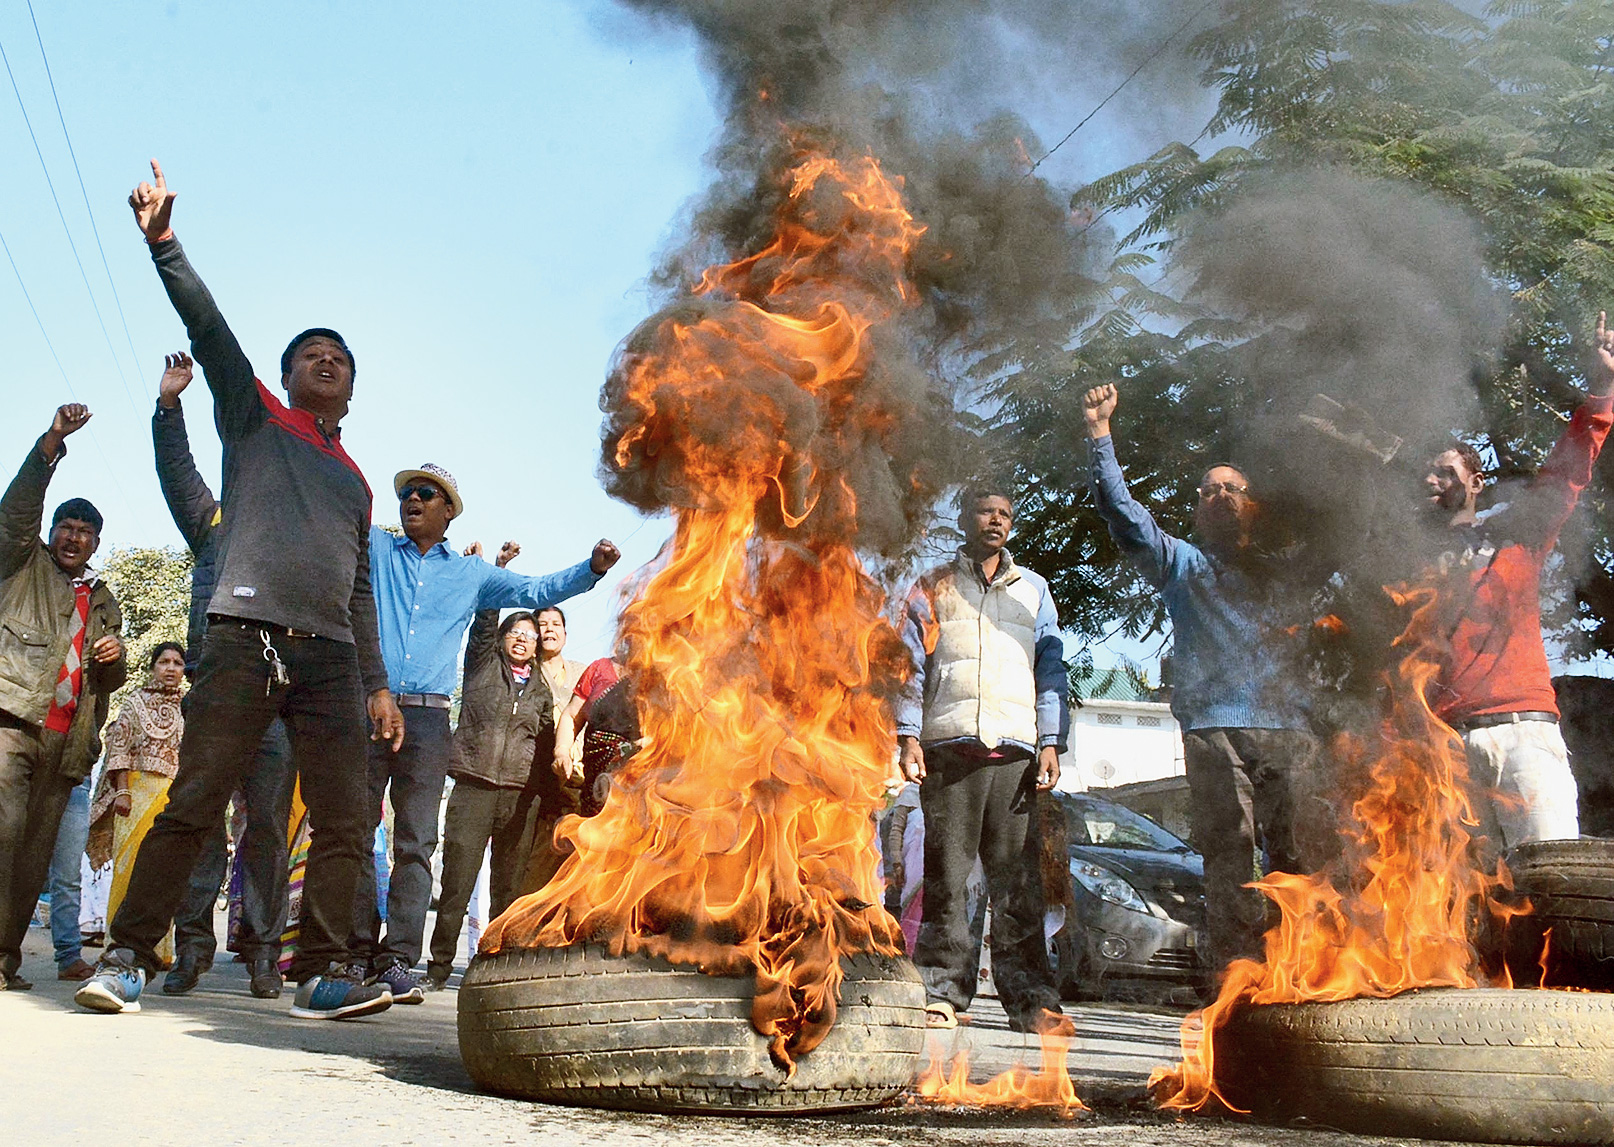 Bandh supporters burn tyres in front of chief minister Sarbananda Sonowal's residence in Dibrugarh on Tuesday to protest against the citizenship bill.